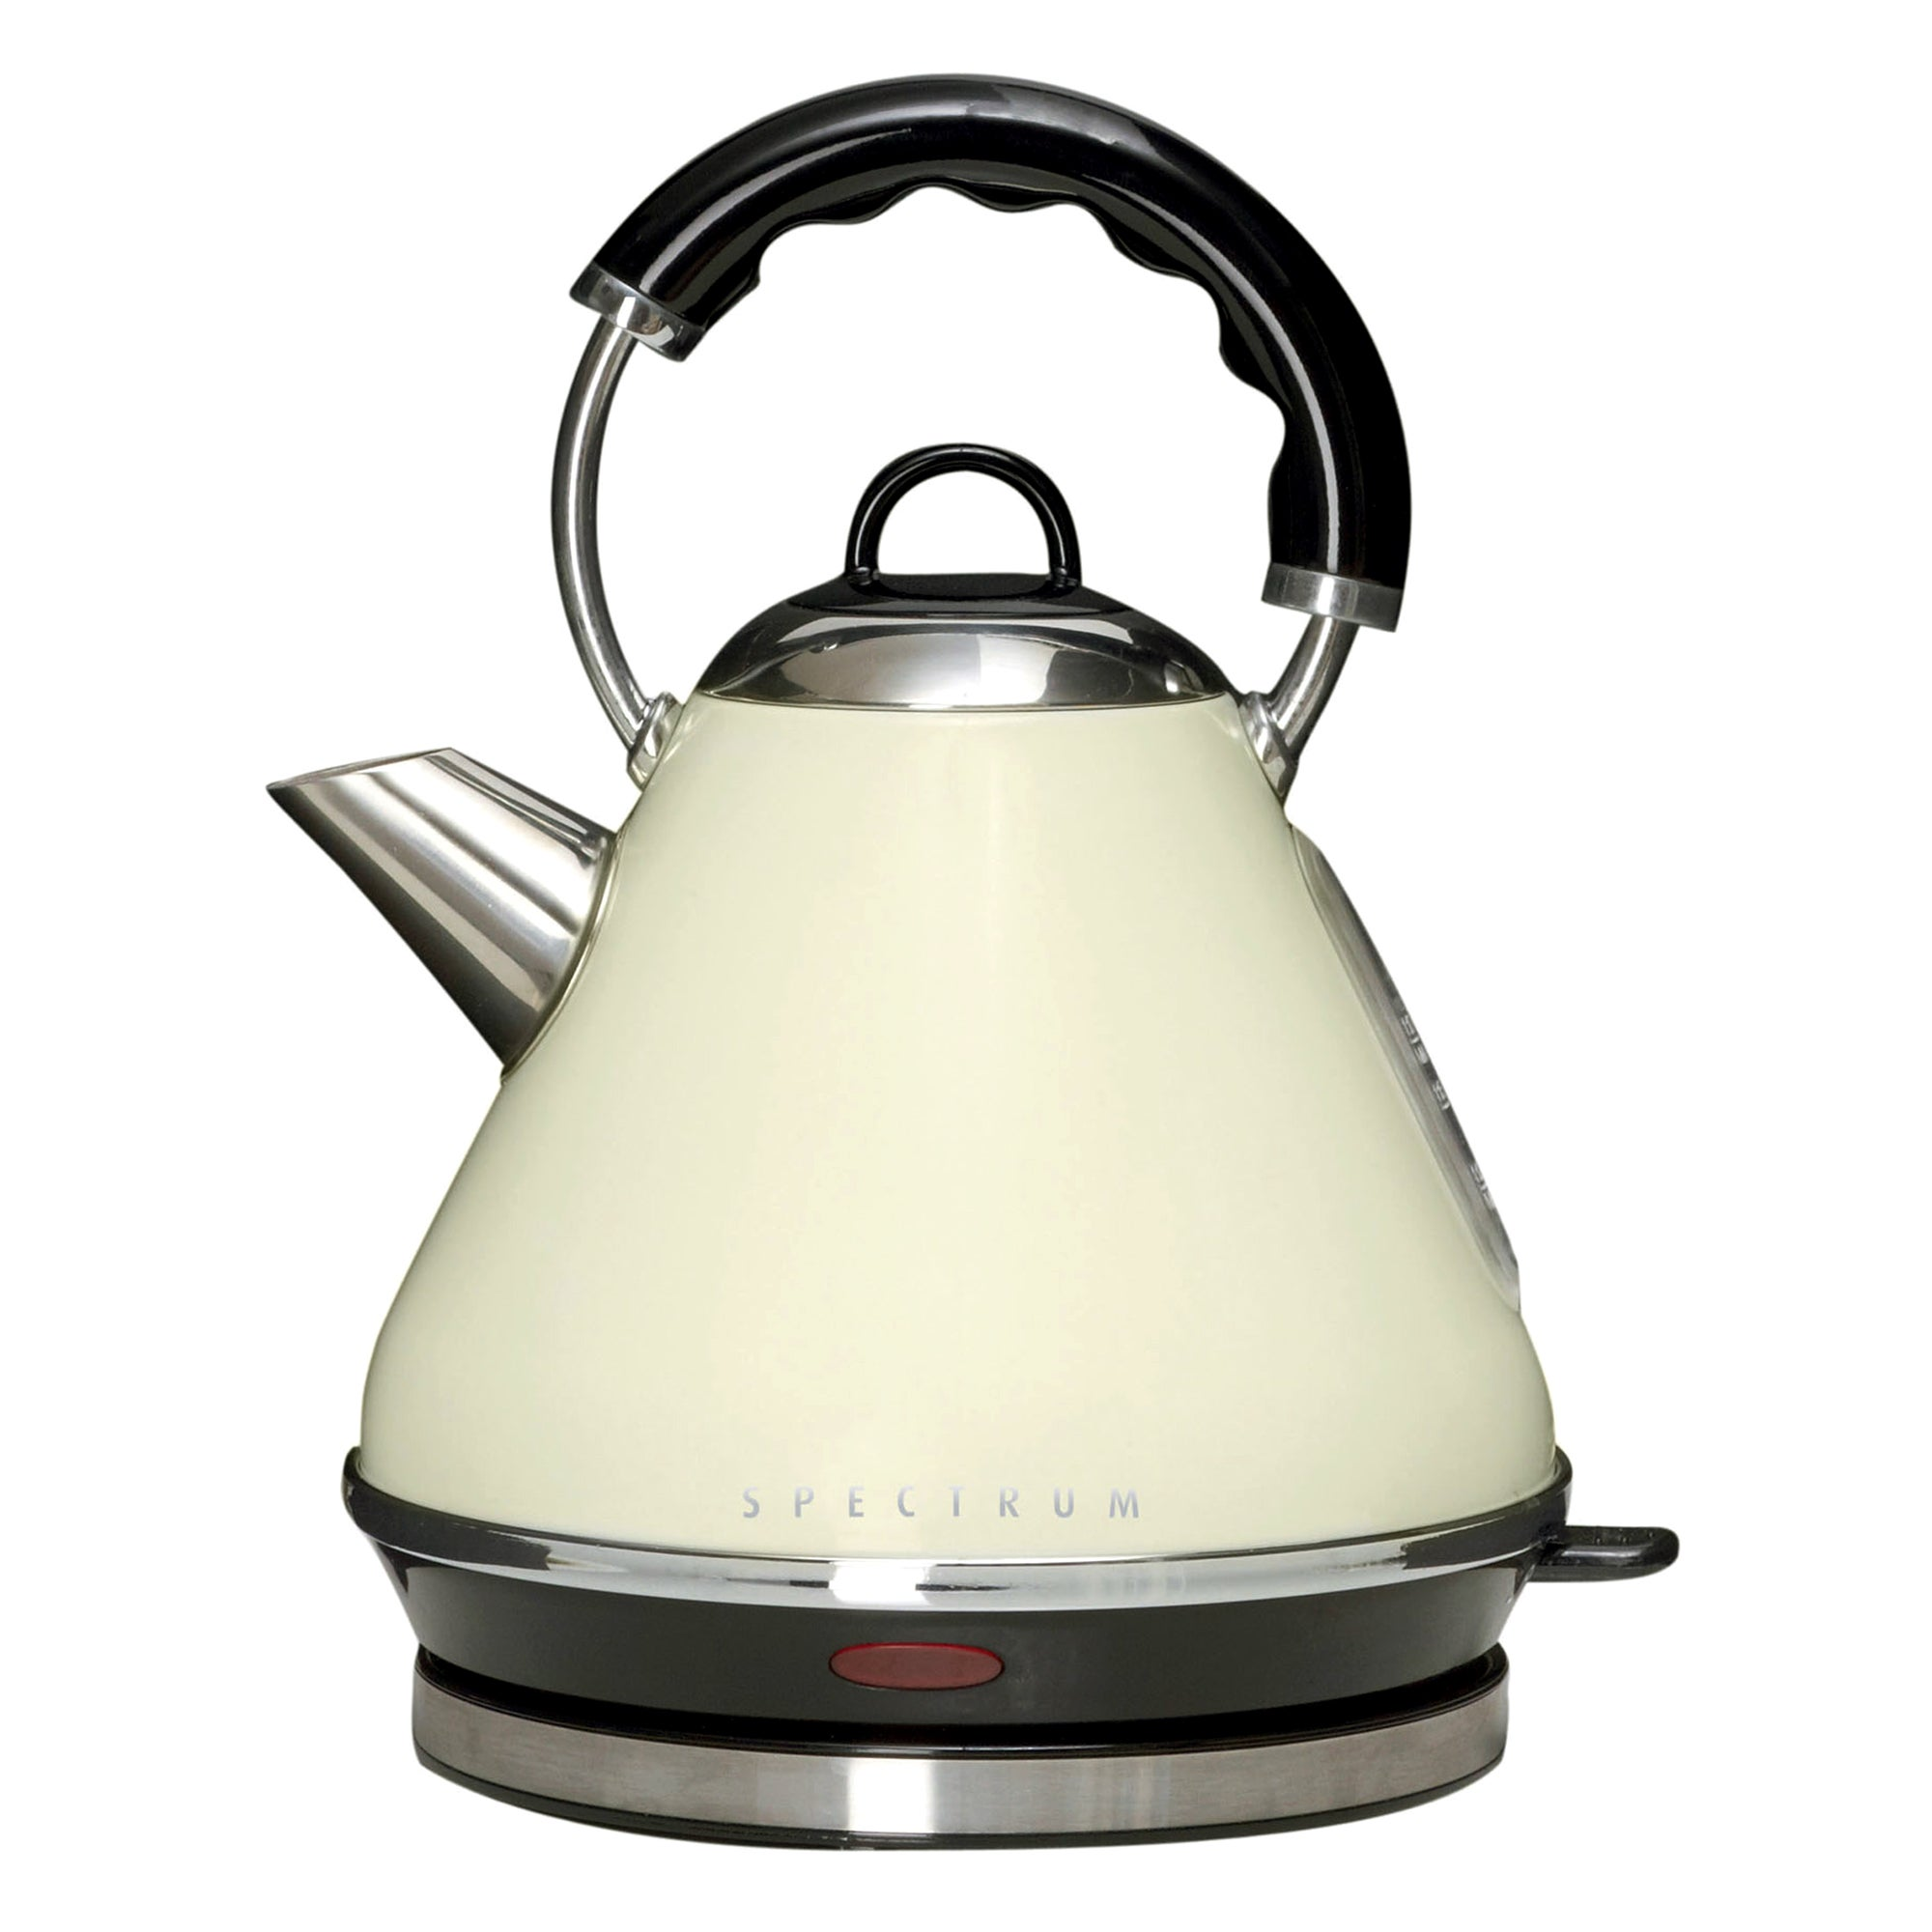 Spectrum 1.7L Cream Pyramid Kettle Cream